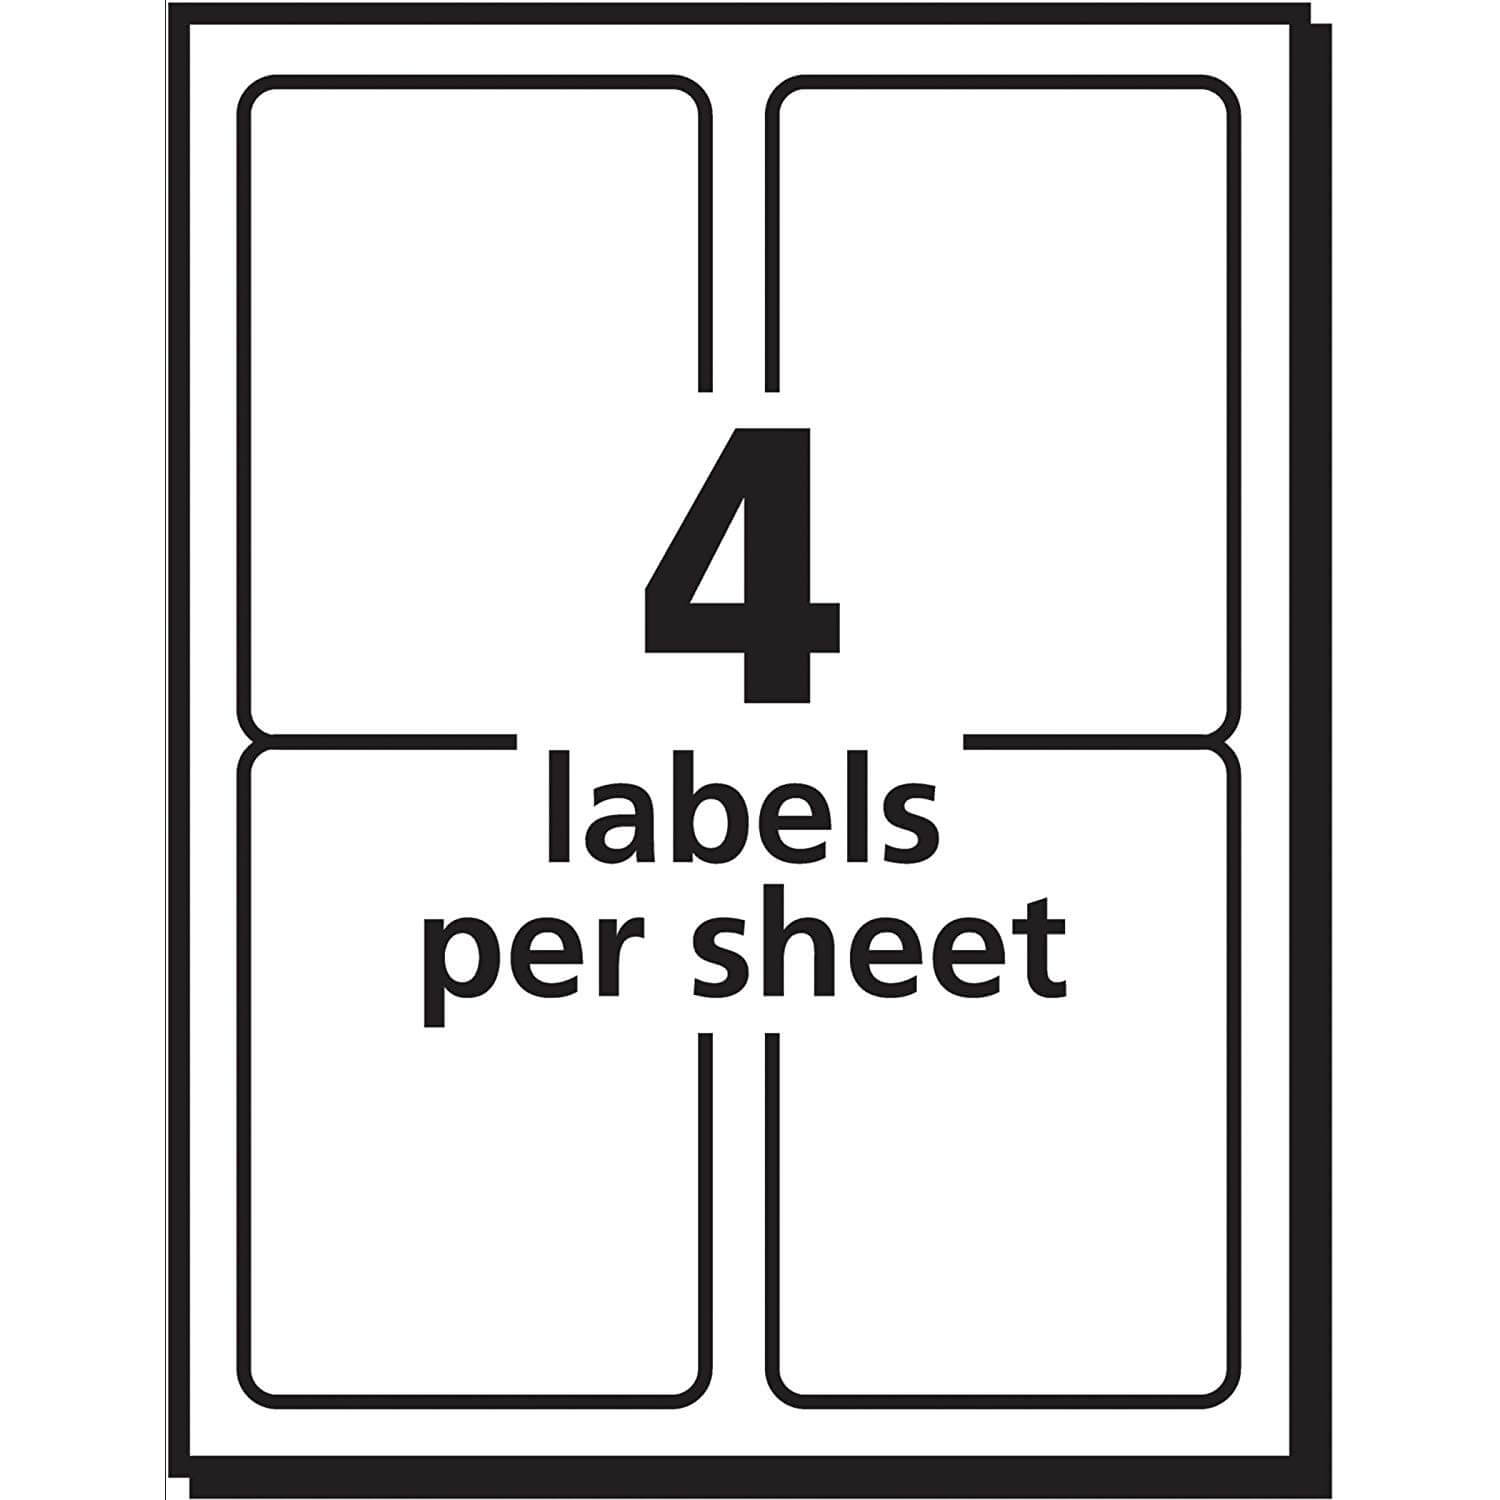 Avery 3×5 Label Template Unique 3×5 Label Template In 3 Labels Per Sheet Template